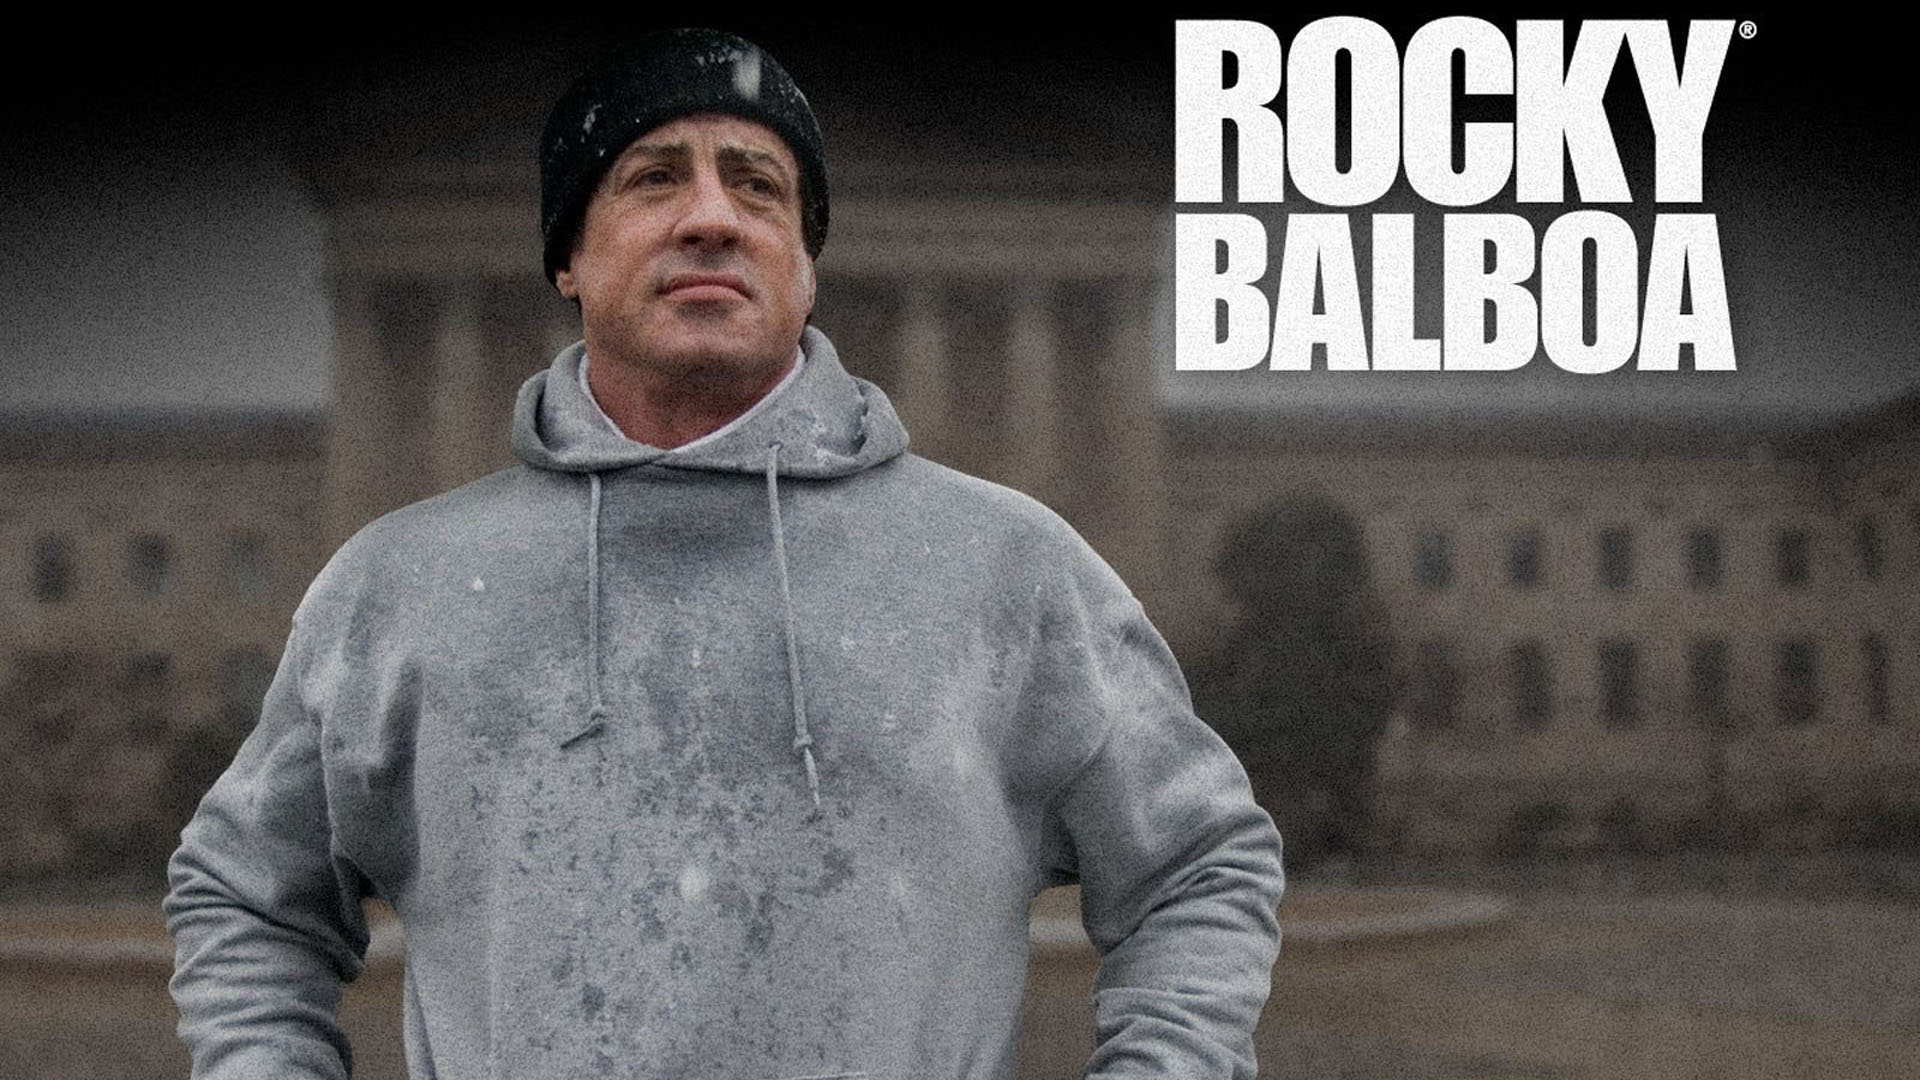 Rocky Balboa Wallpaper 1920x1080 Wallpapers 1920x1080 Wallpapers 1920x1080